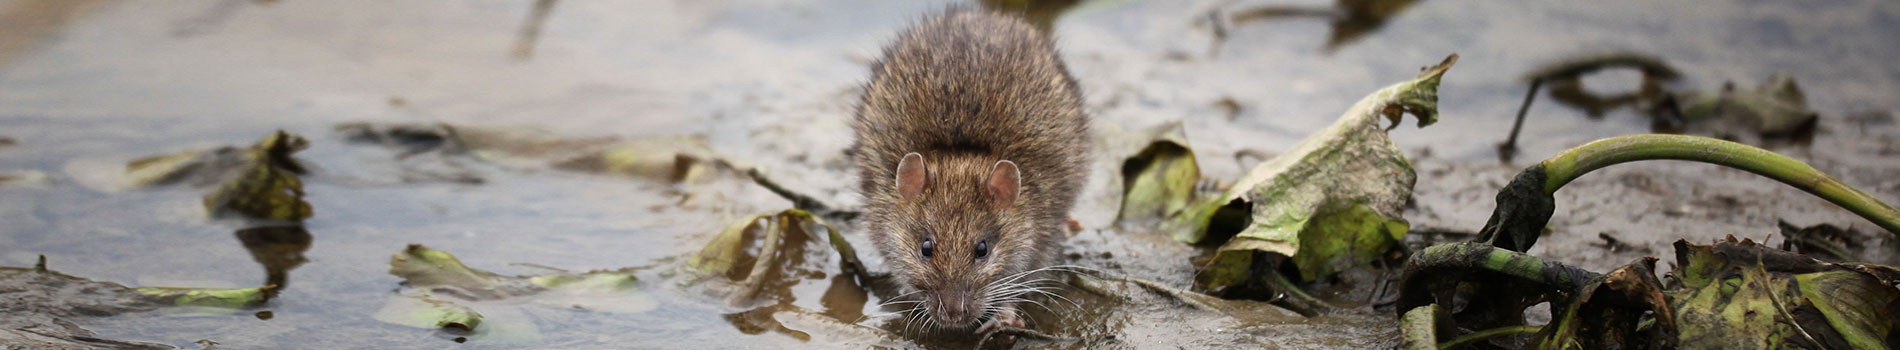 Image of a rat. A common pest control species.